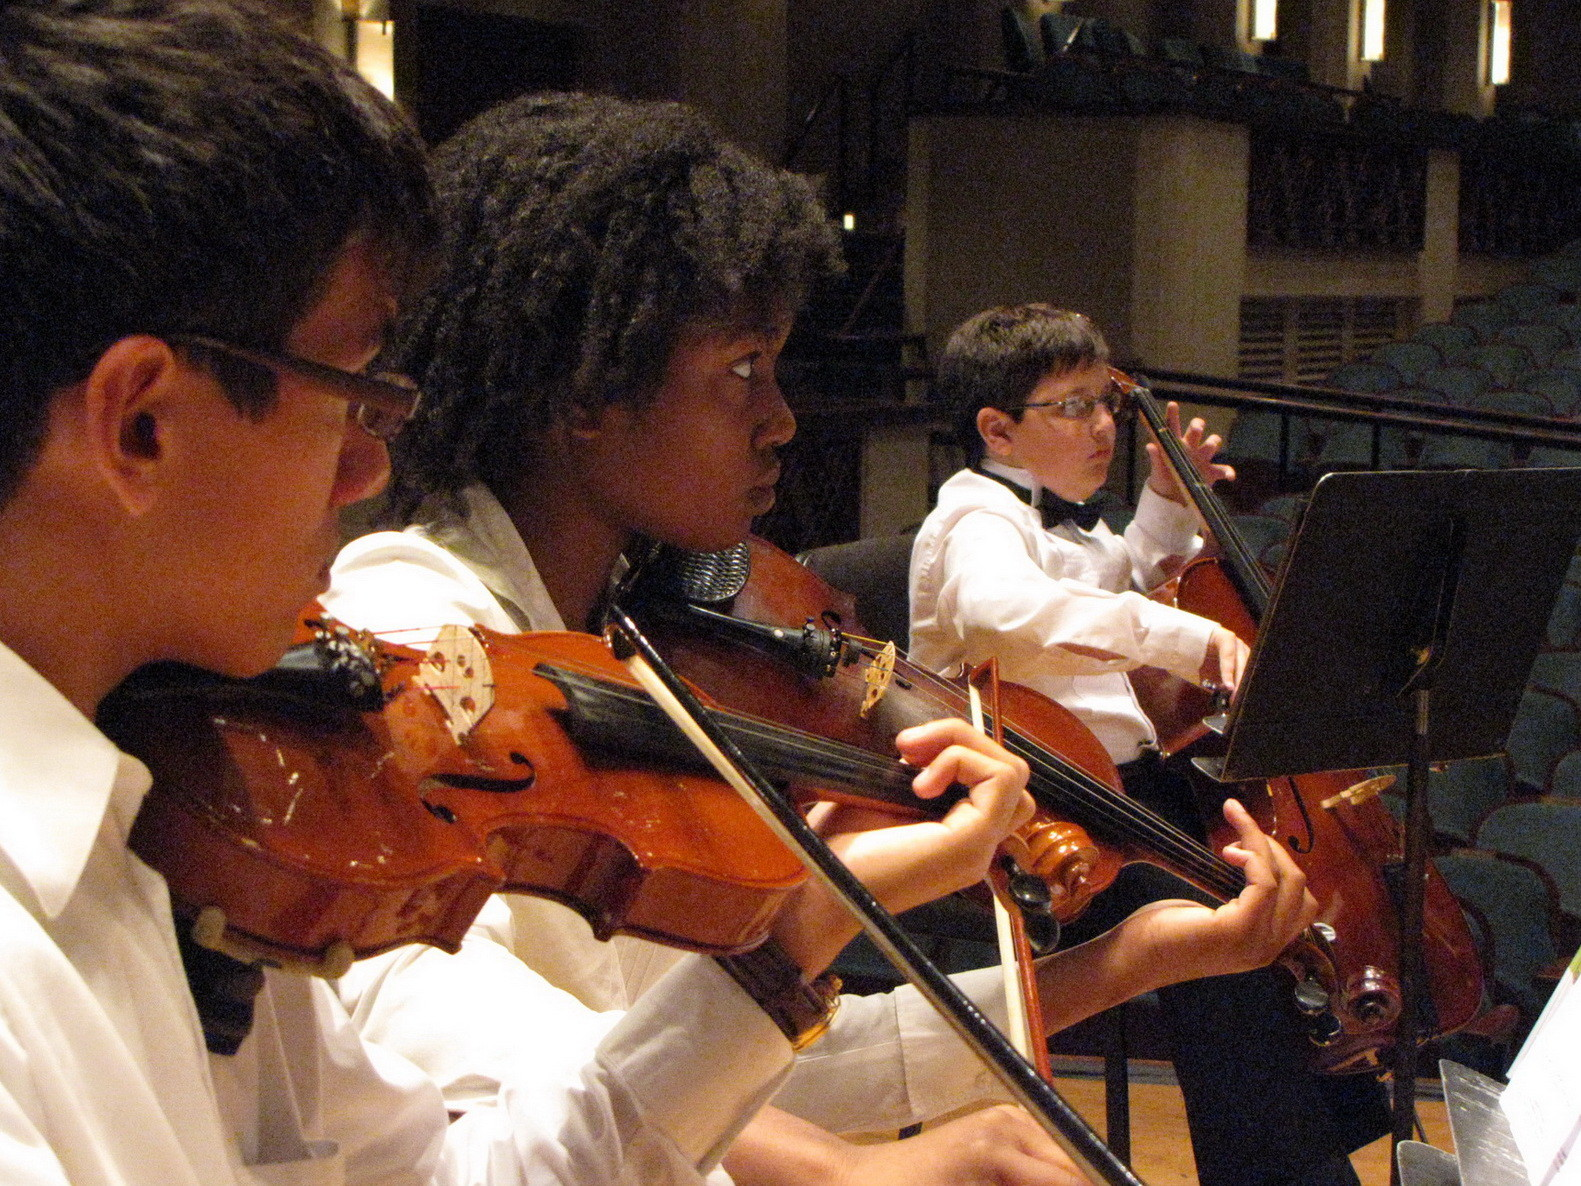 Auditions for the Jacksonville Symphony Youth Orchestra (pictured) are held May 28-31 and June 1-2 on FSCJ's South Campus.